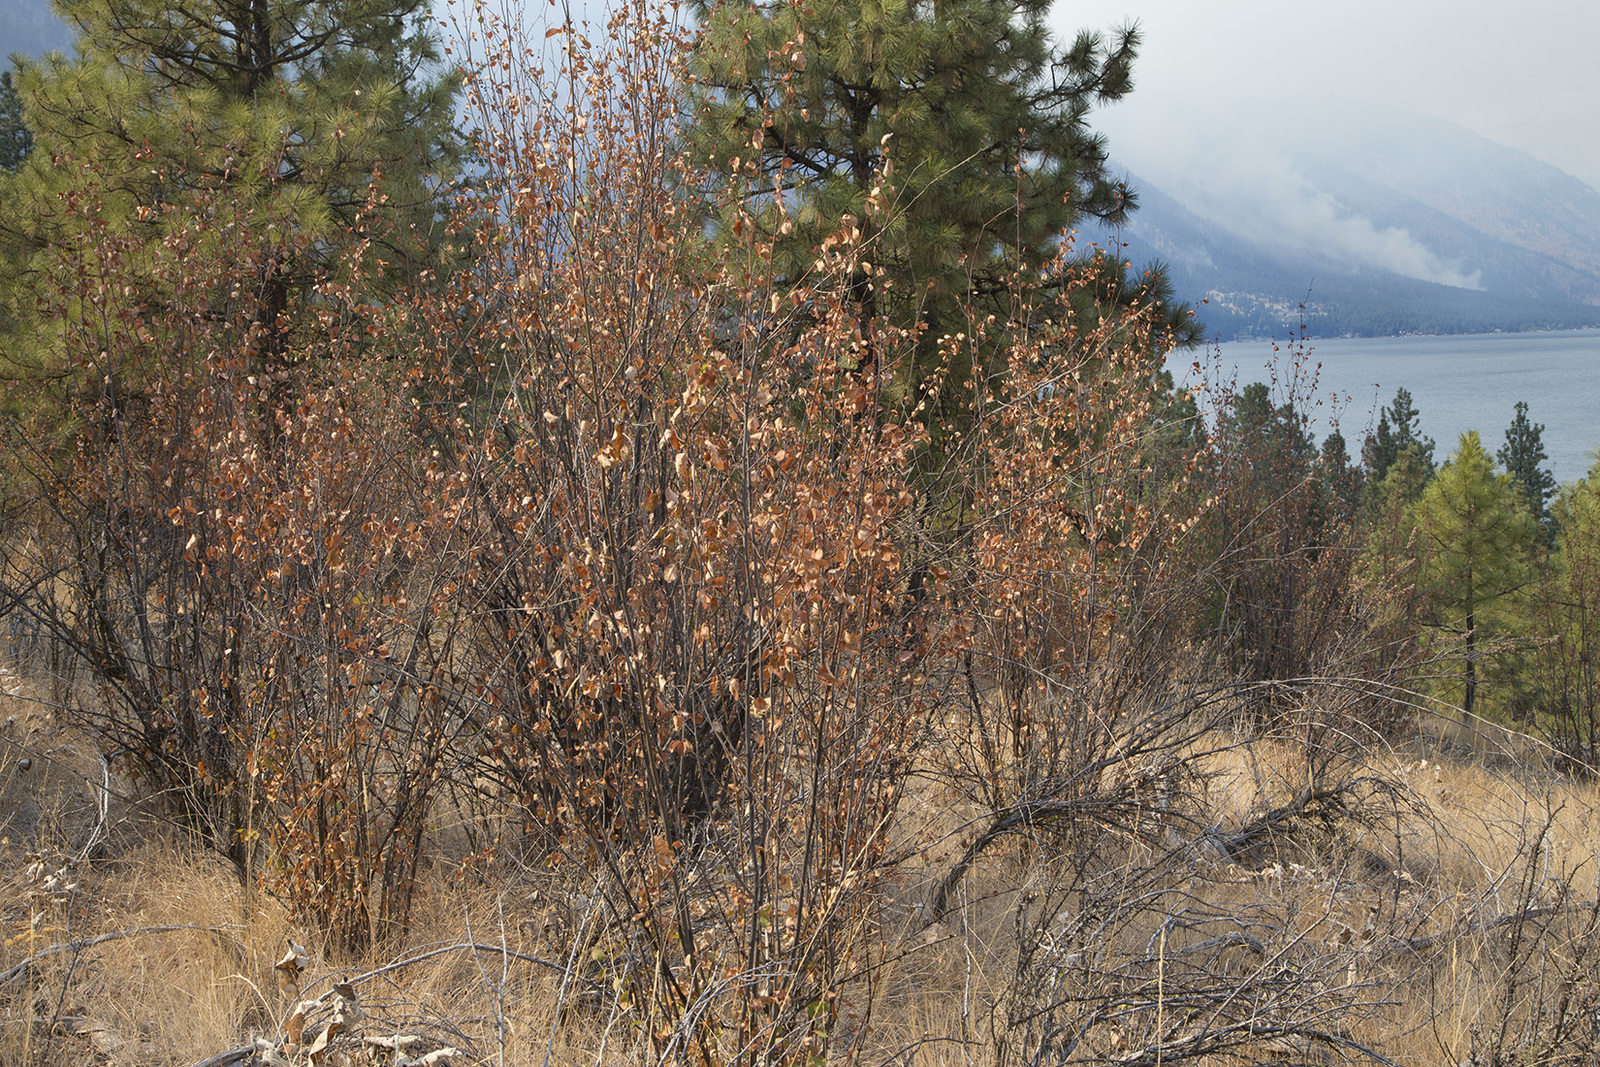 Serviceberry bushes showing signs of extreme drought, near the south shore of Lake Chelan. Photo by John Marshall.